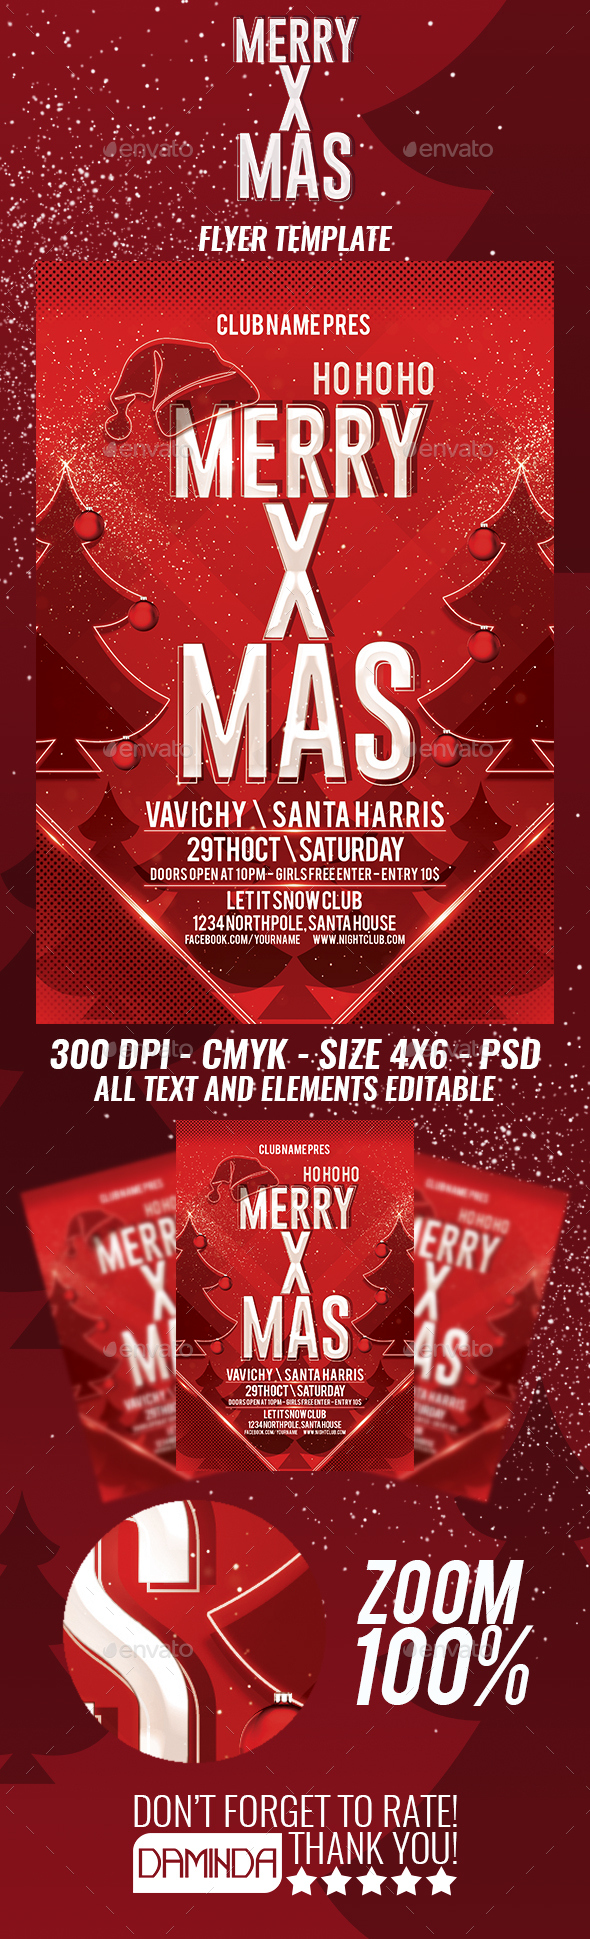 Merry-X-Mas Flyer Template - Holidays Events